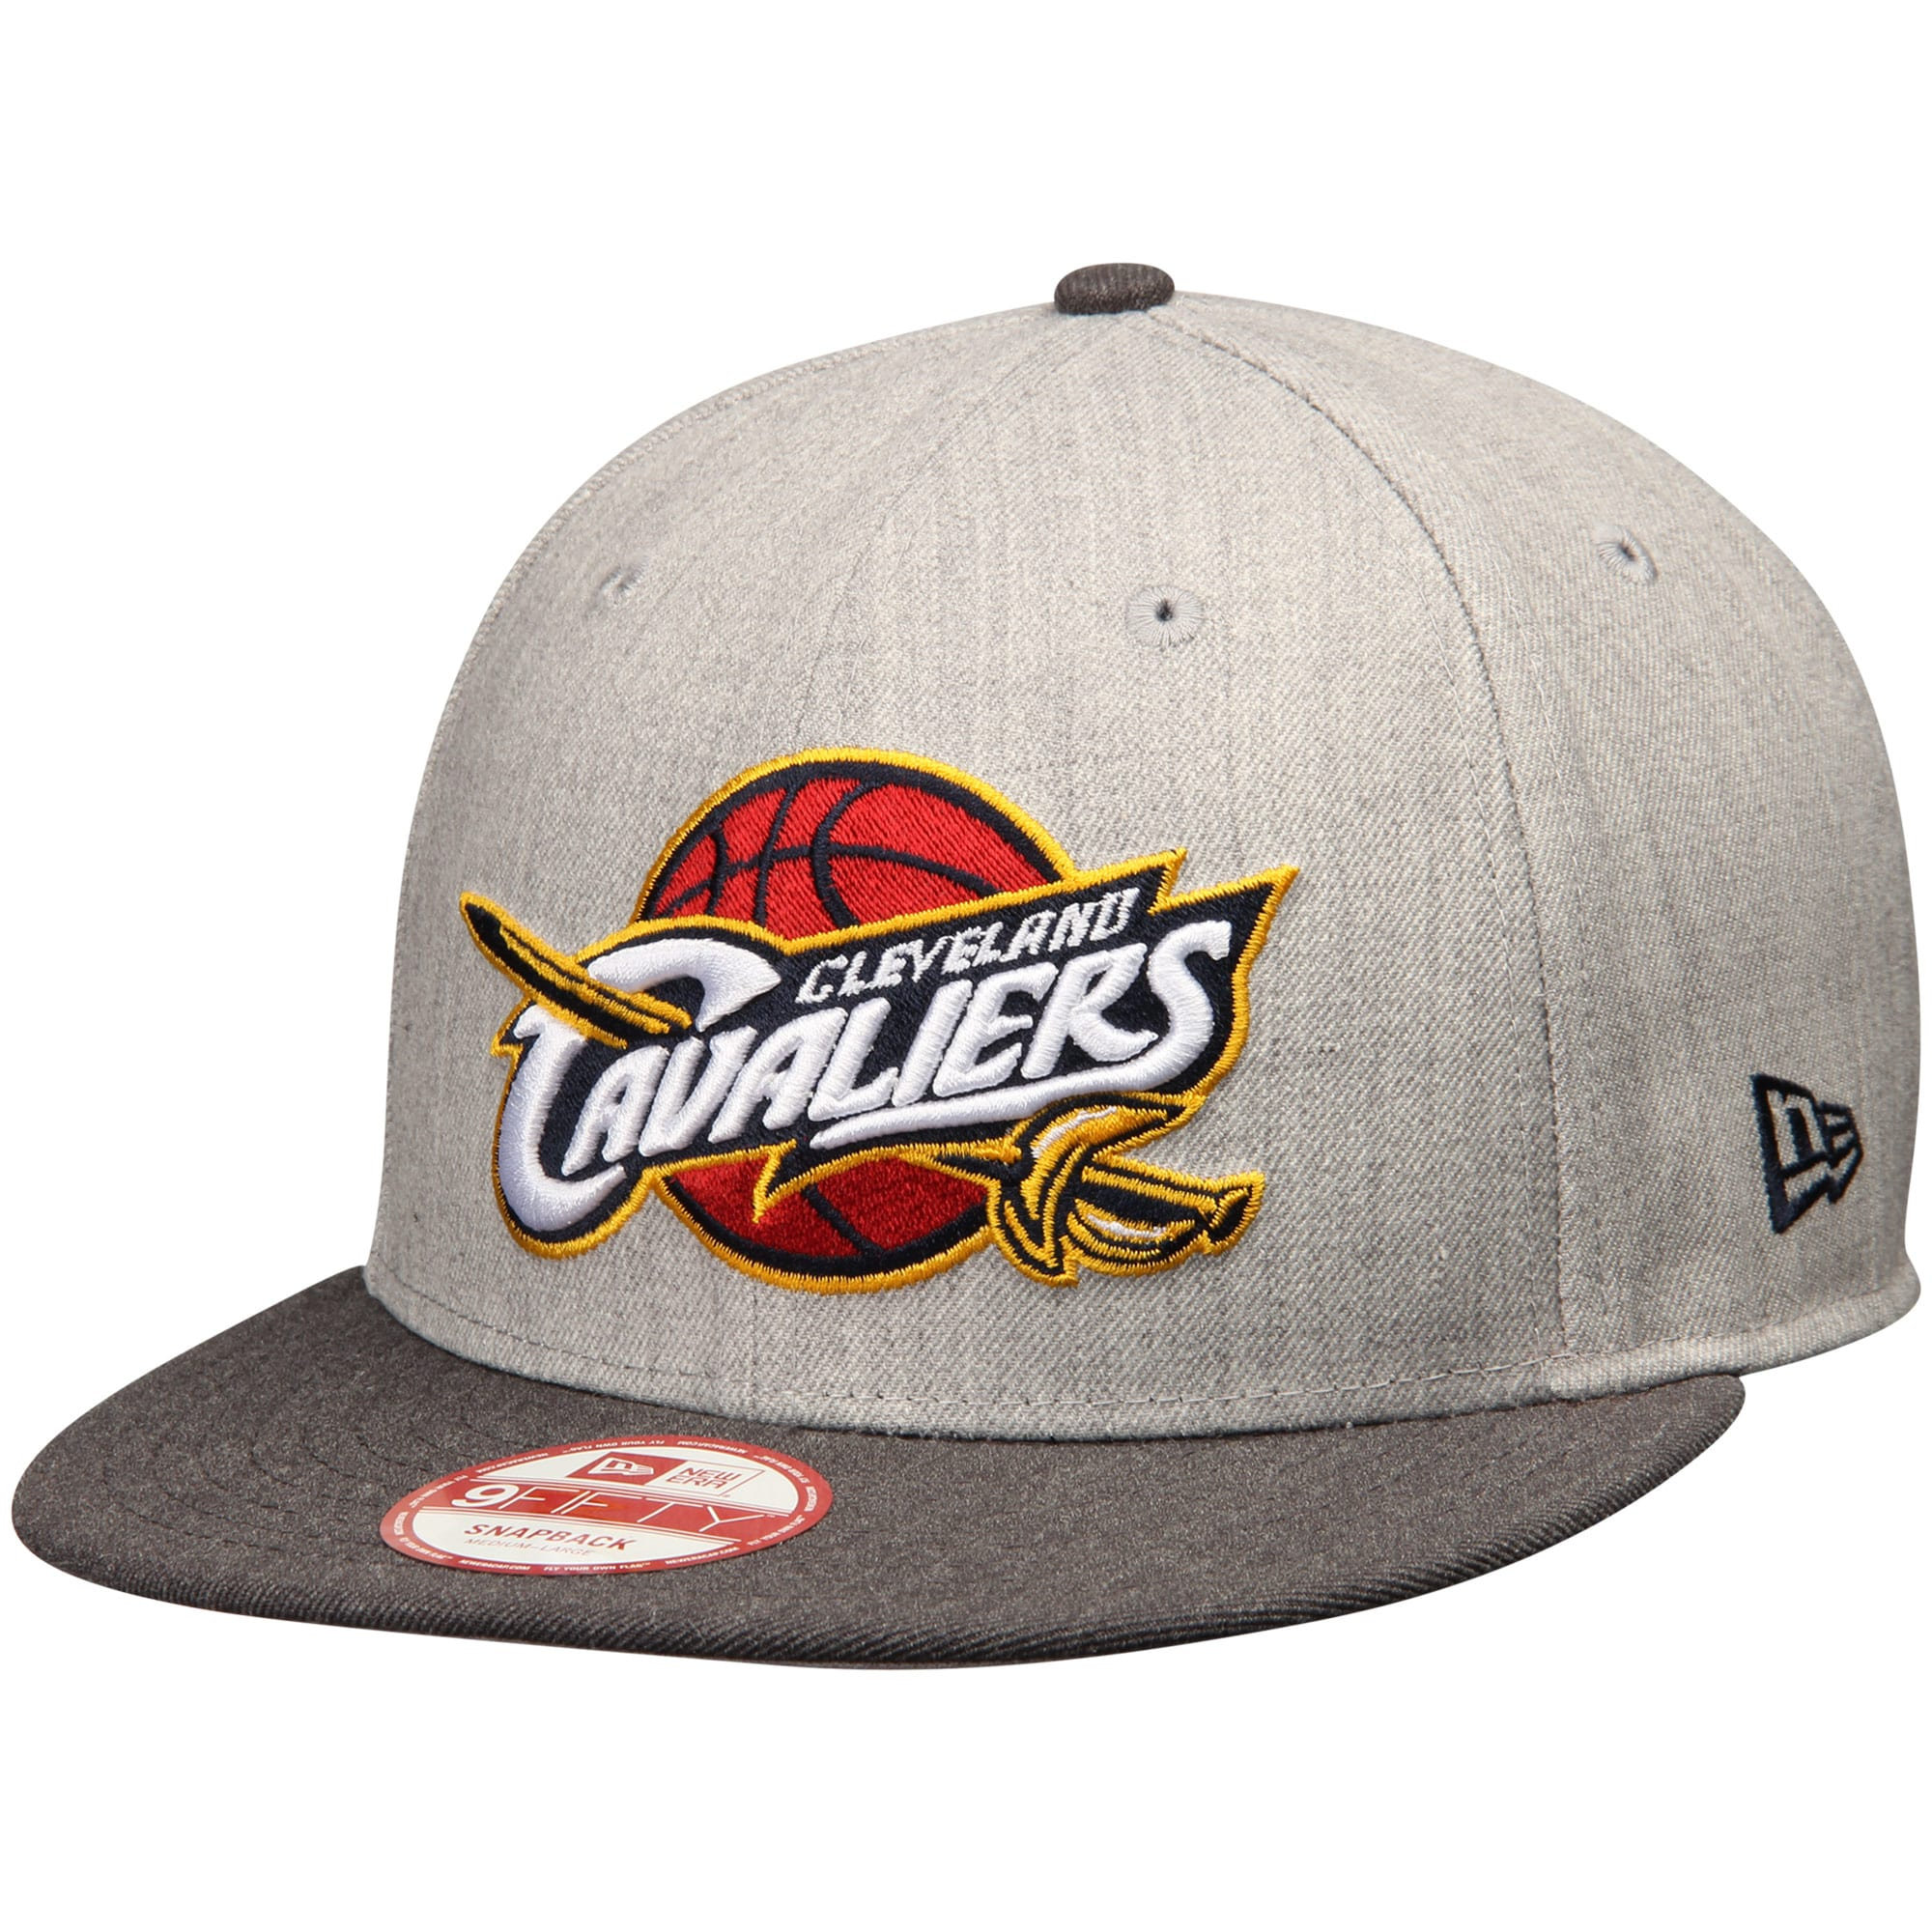 Cleveland Cavaliers New Era Action 2-Tone 9FIFTY Adjustable Hat - Heathered Gray